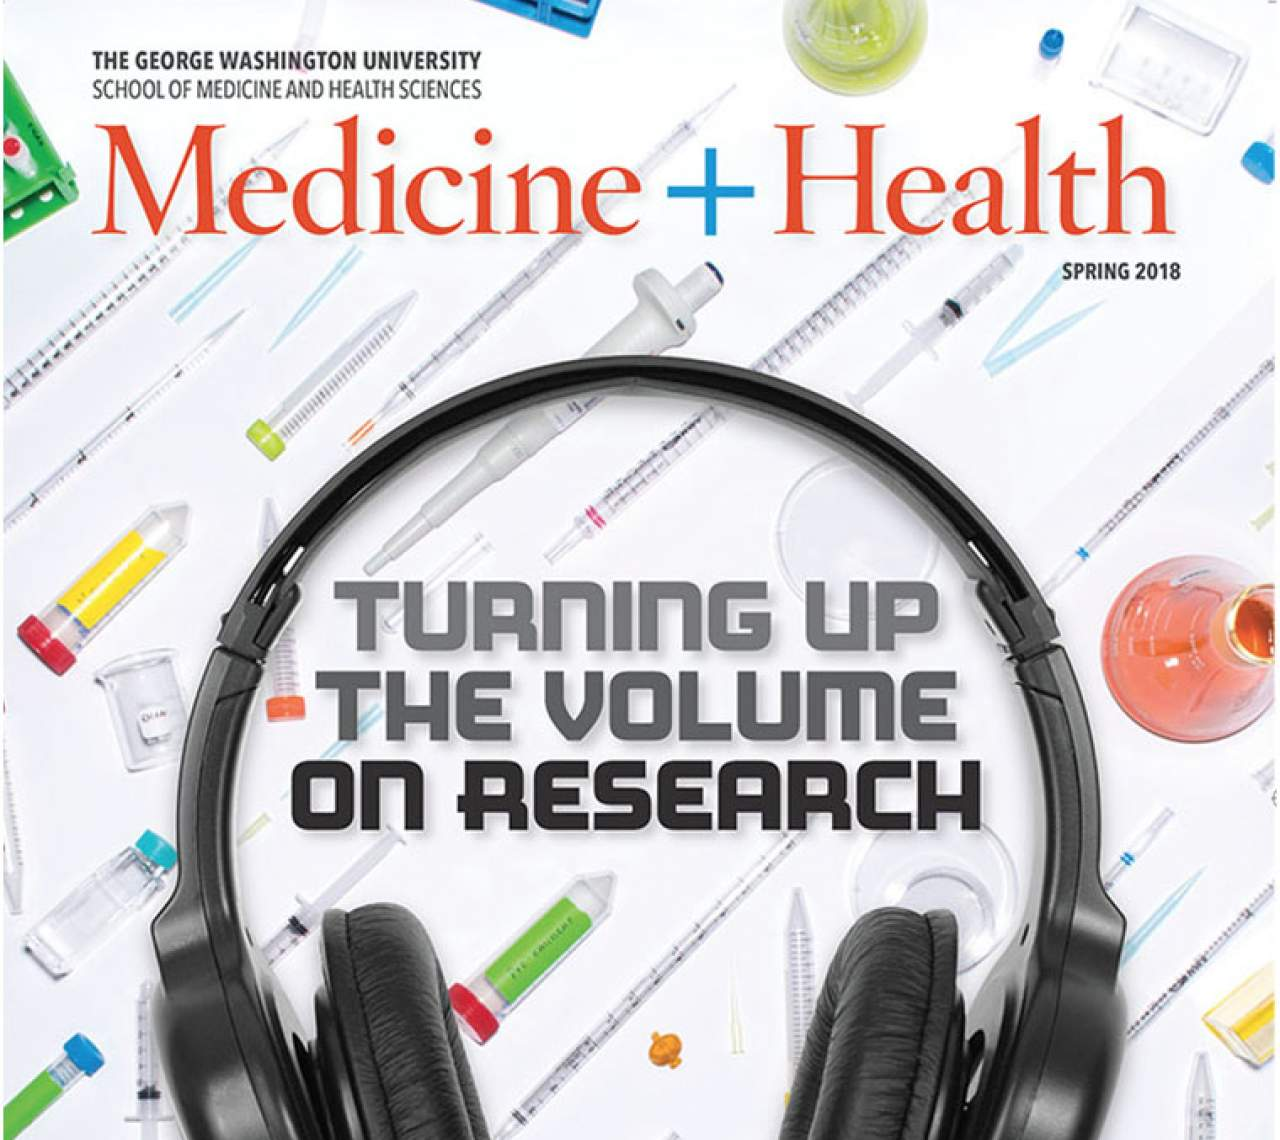 Medicine and Health: Turning up the Volume on Research